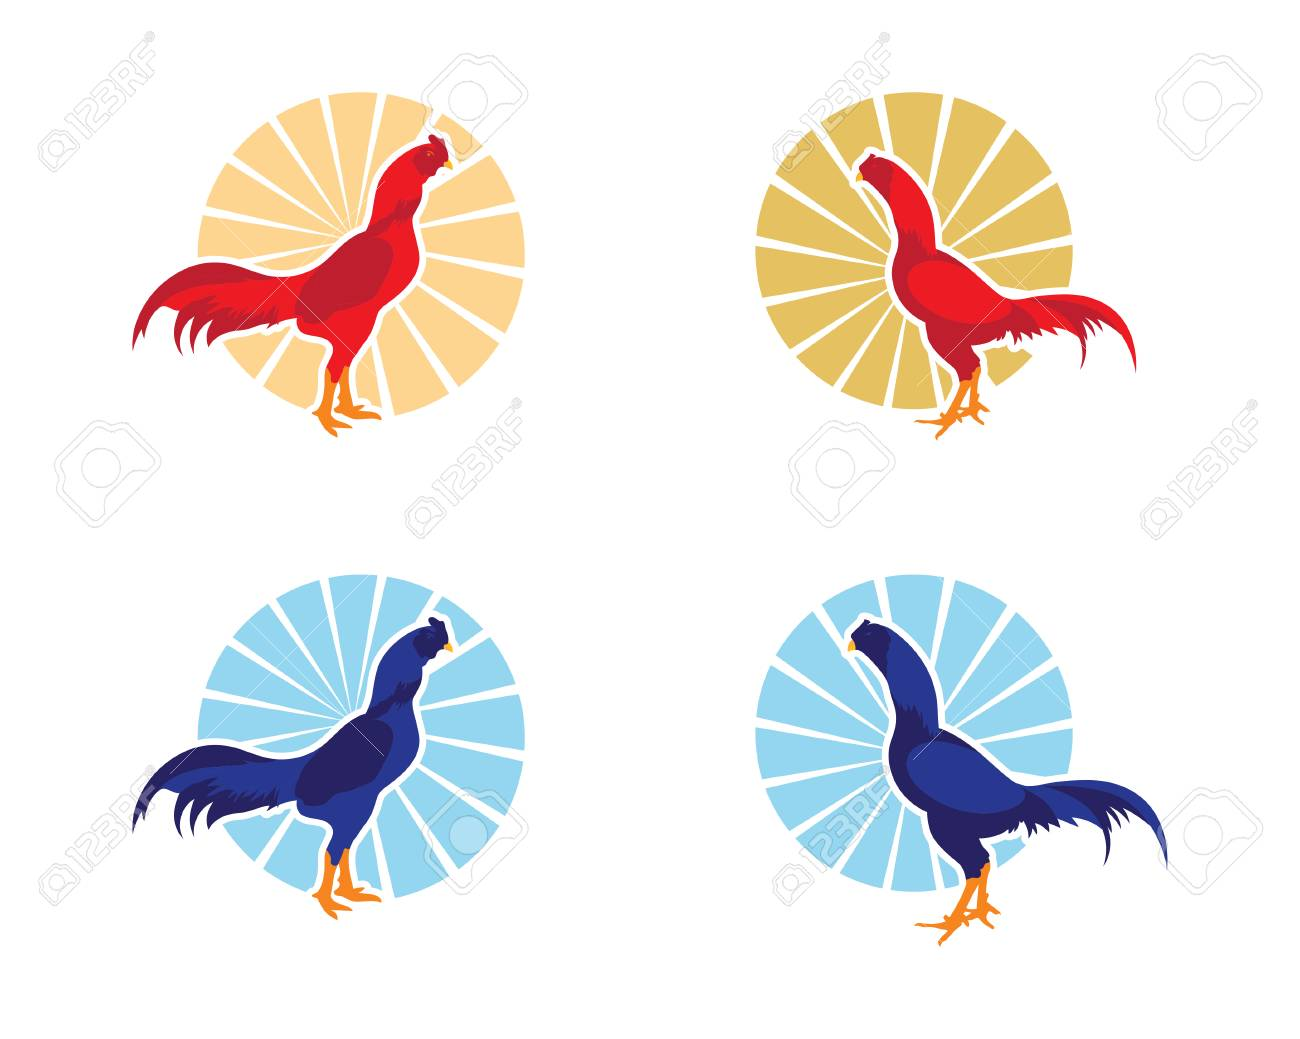 Rooster Logo Template Royalty Free Cliparts, Vectors, And Stock ...